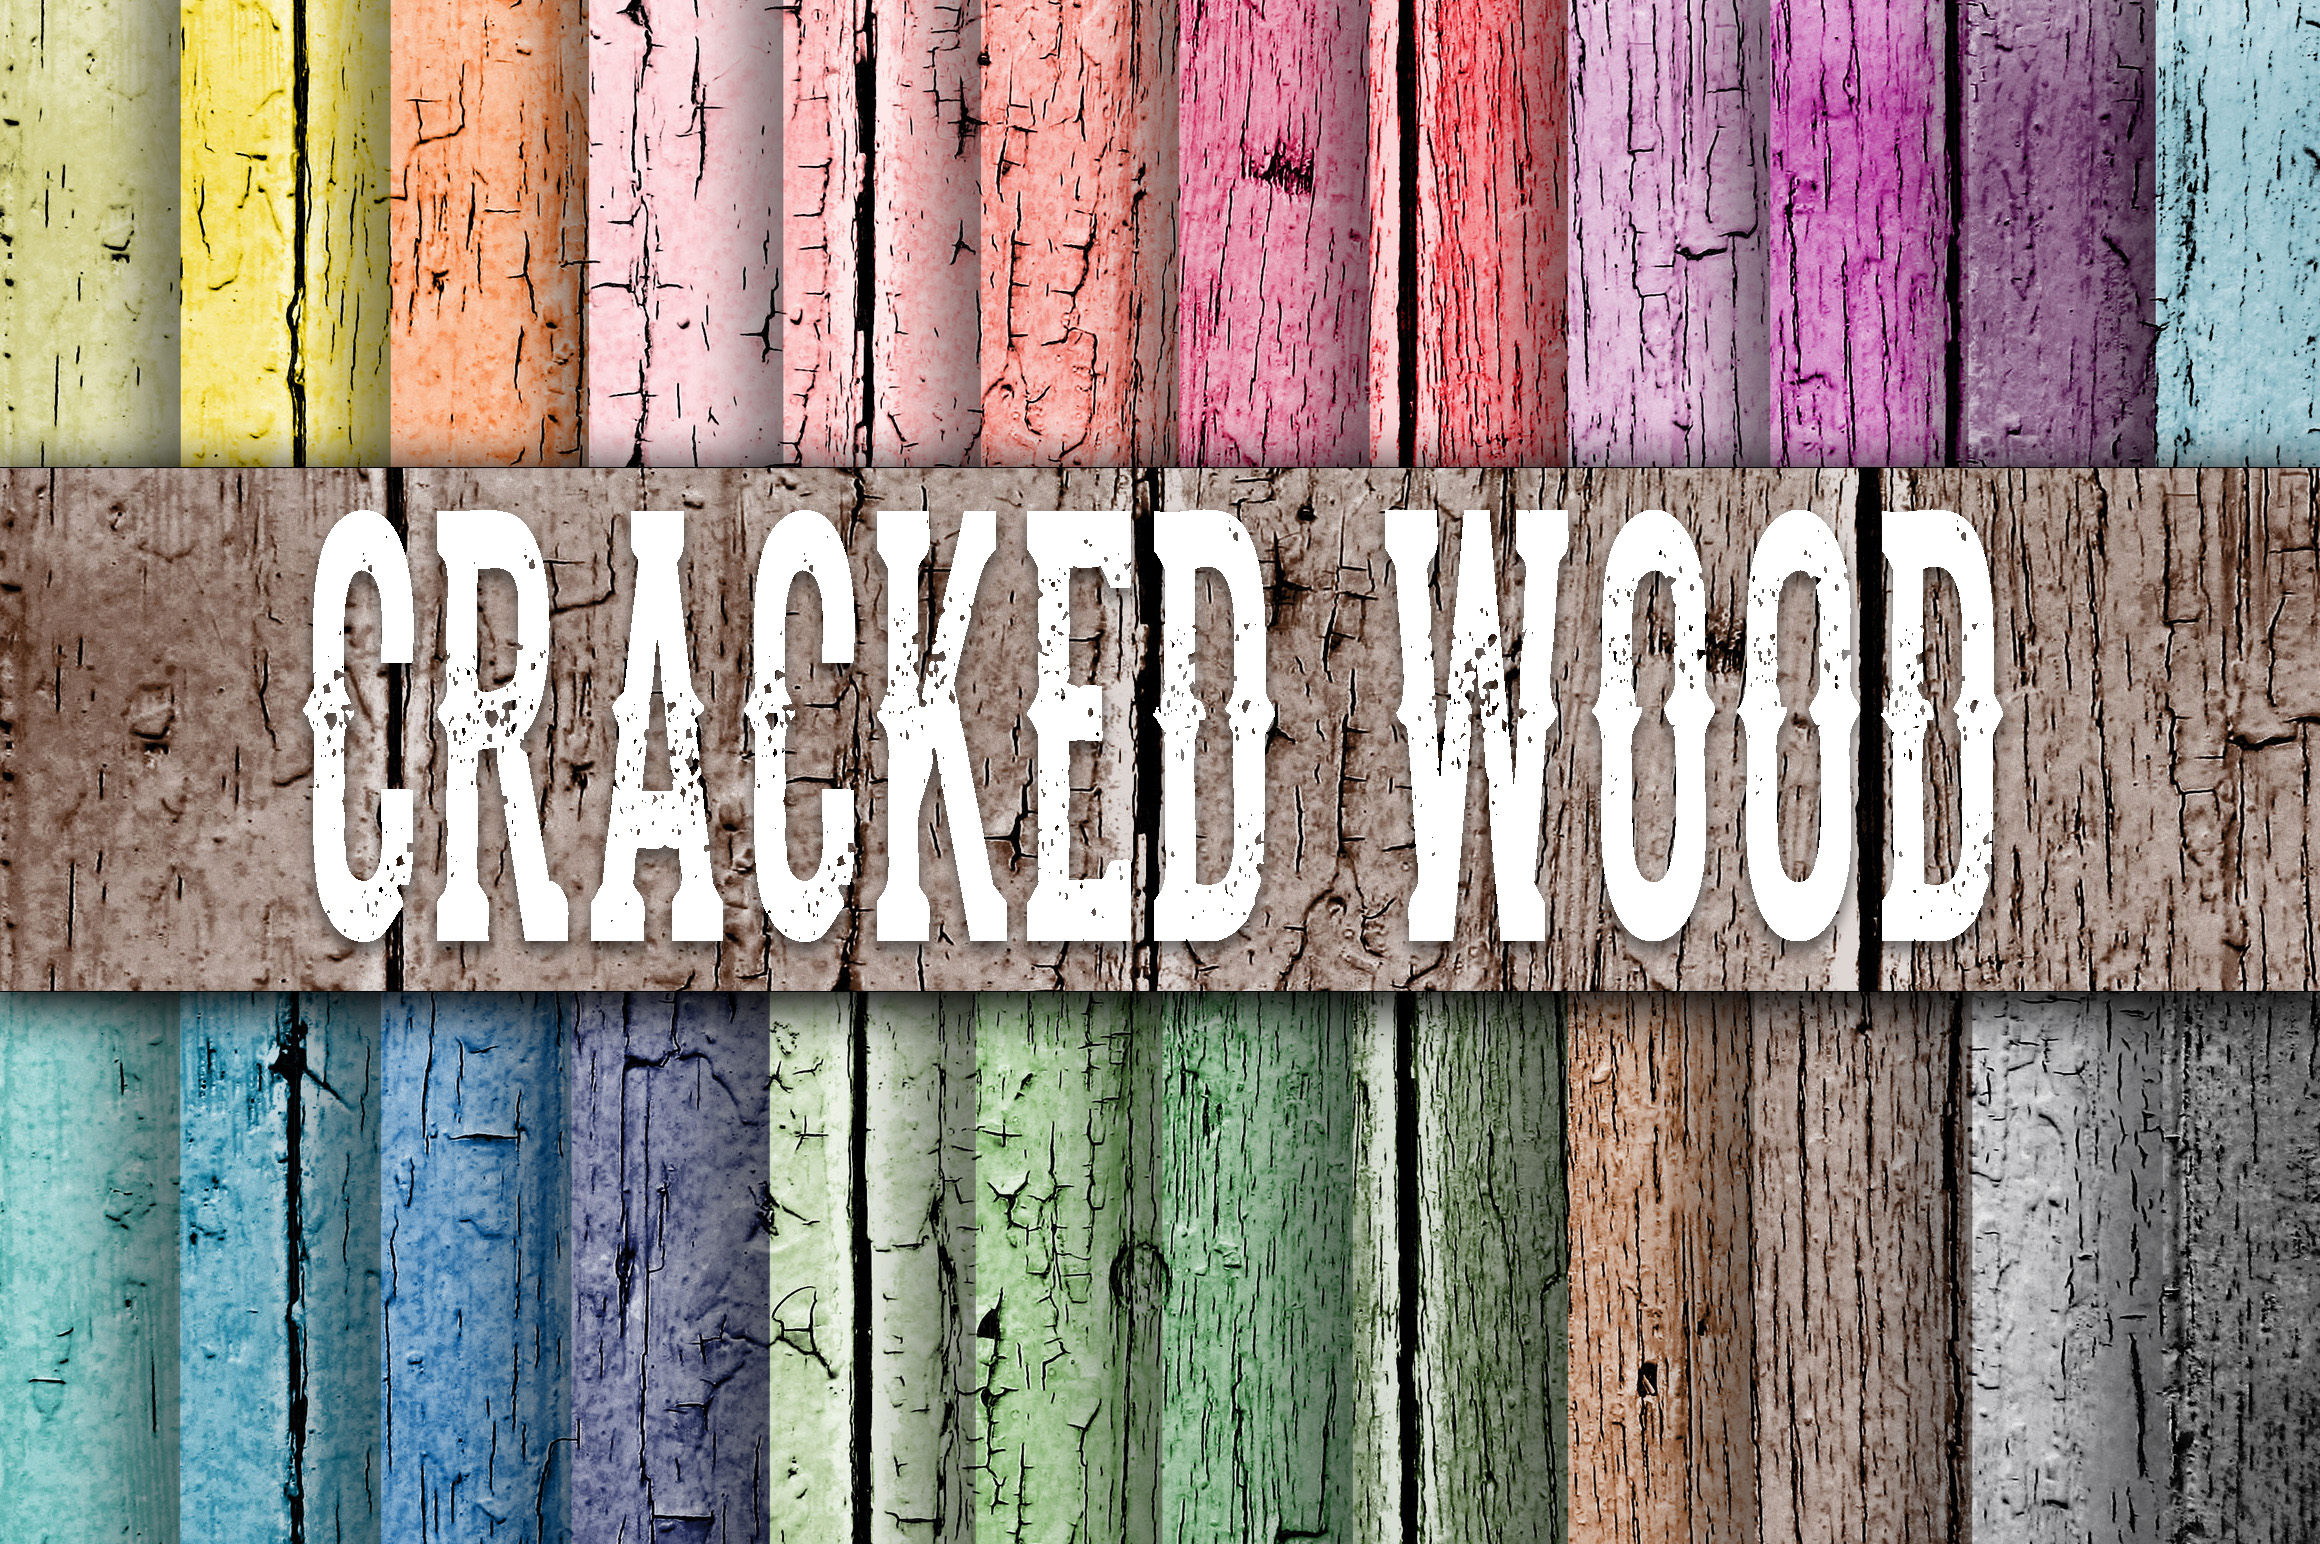 Cracked Wood Fence Digital Paper Textures Graphic Backgrounds By oldmarketdesigns